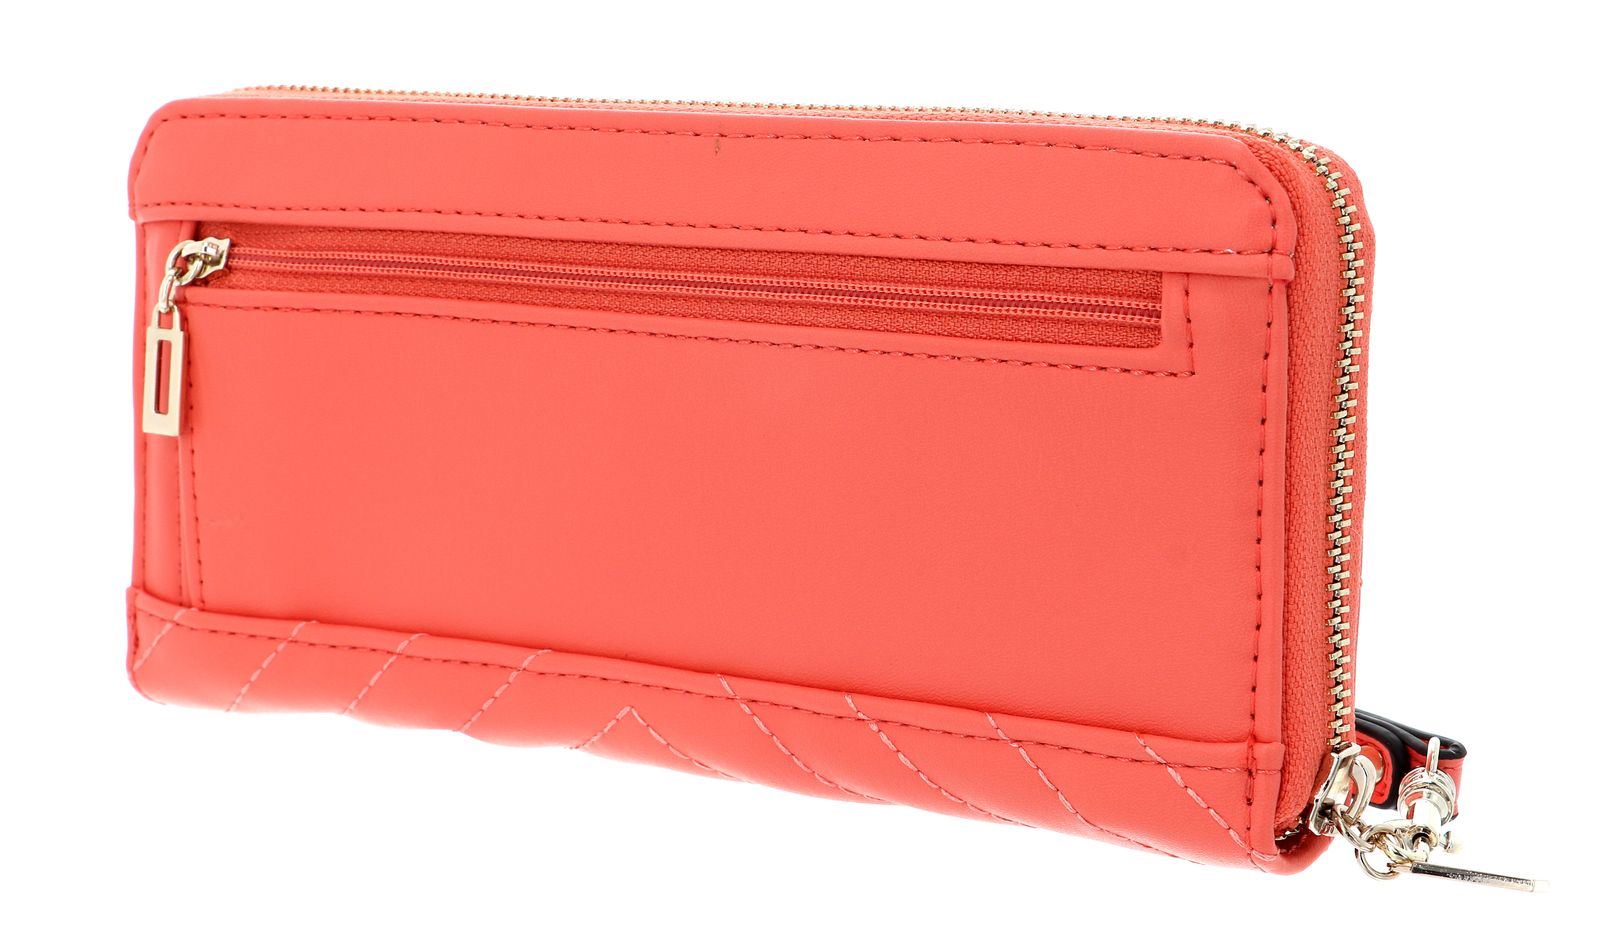 GUESS Blakely SLG Large Zip Around Coral